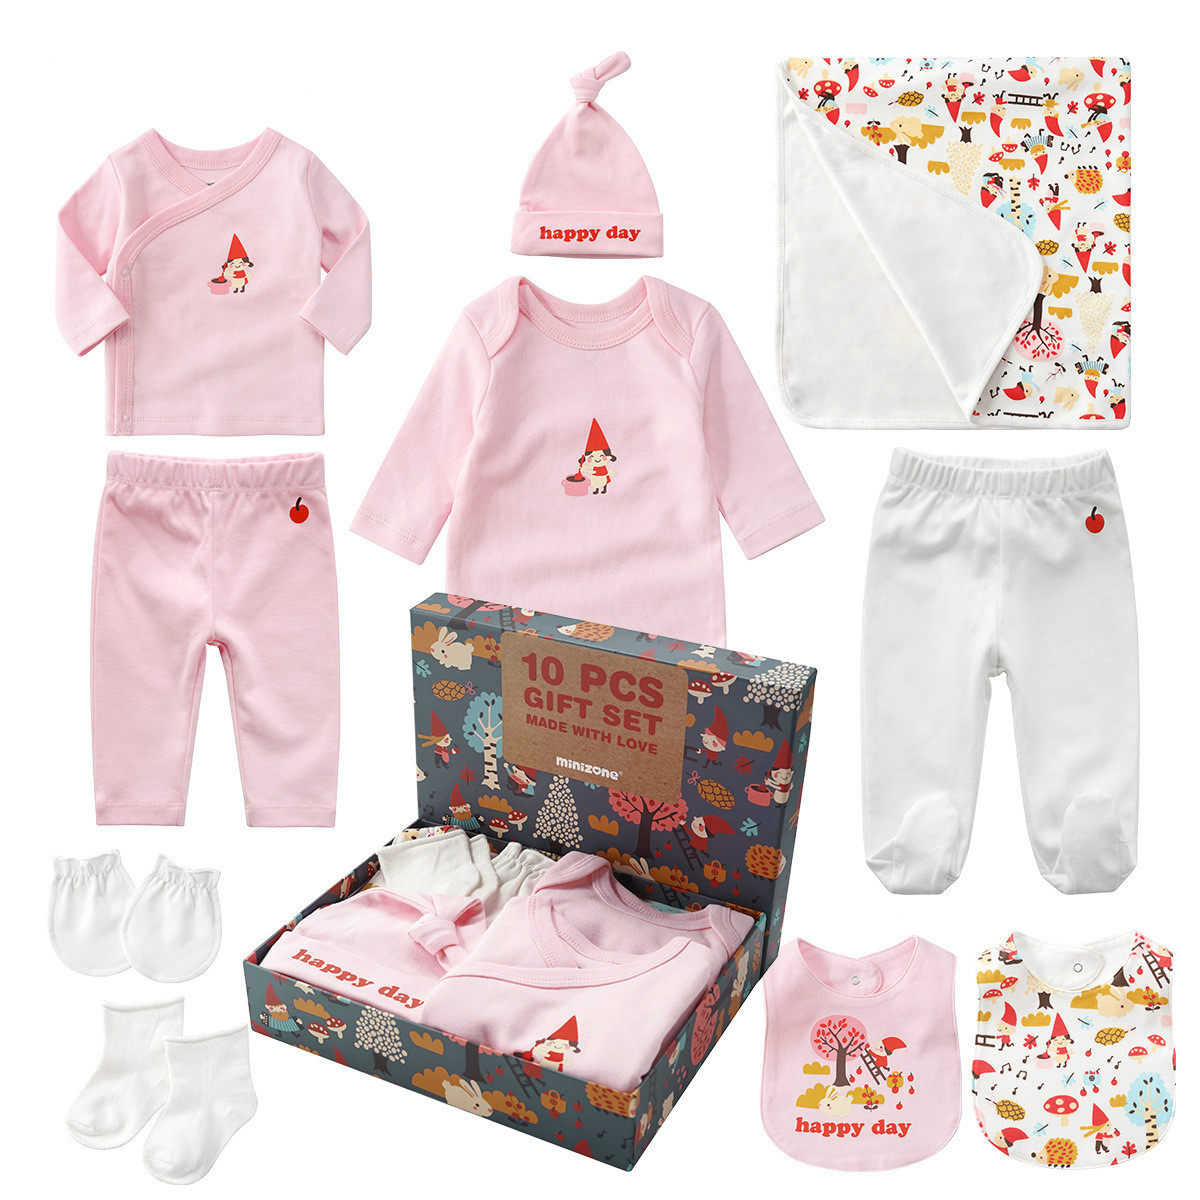 10pcs Newborn Unisex Baby Gift Box Cute Cartoon Girls Sets Pure Cotton Full Moon Baby Gift Christmas Boy Clothing Set Outfits 10pcs baby products boy and girls full moon fashion sets spring and autumn baby best gift newborn baby clothes unisex set cotton